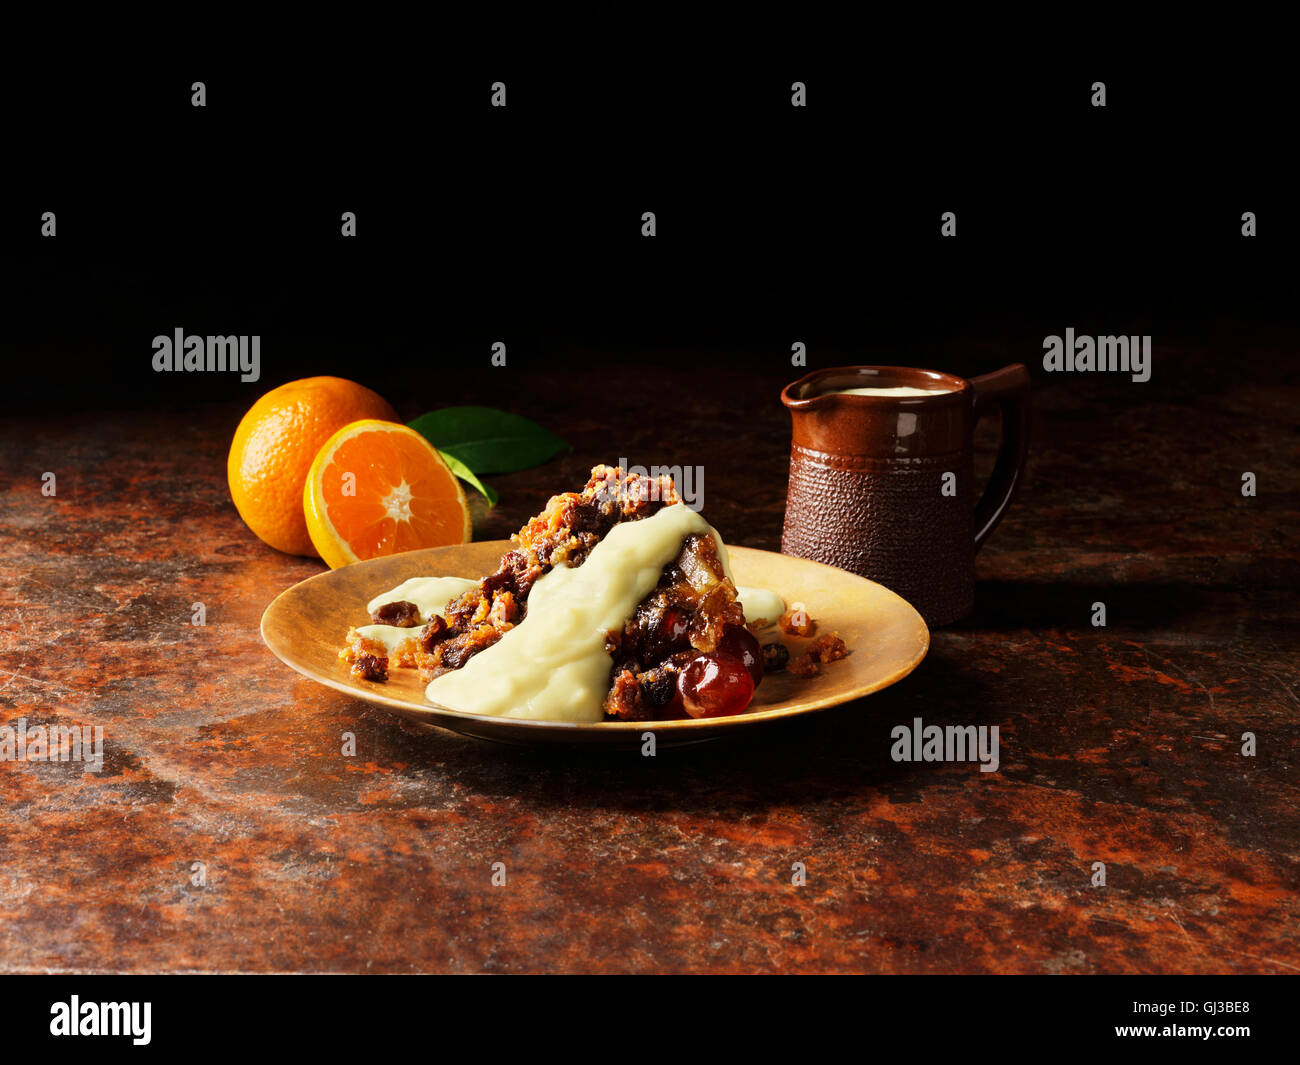 Christmas pudding with liqueur and orange sauce on gold plate, oranges, vintage pot of sauce - Stock Image